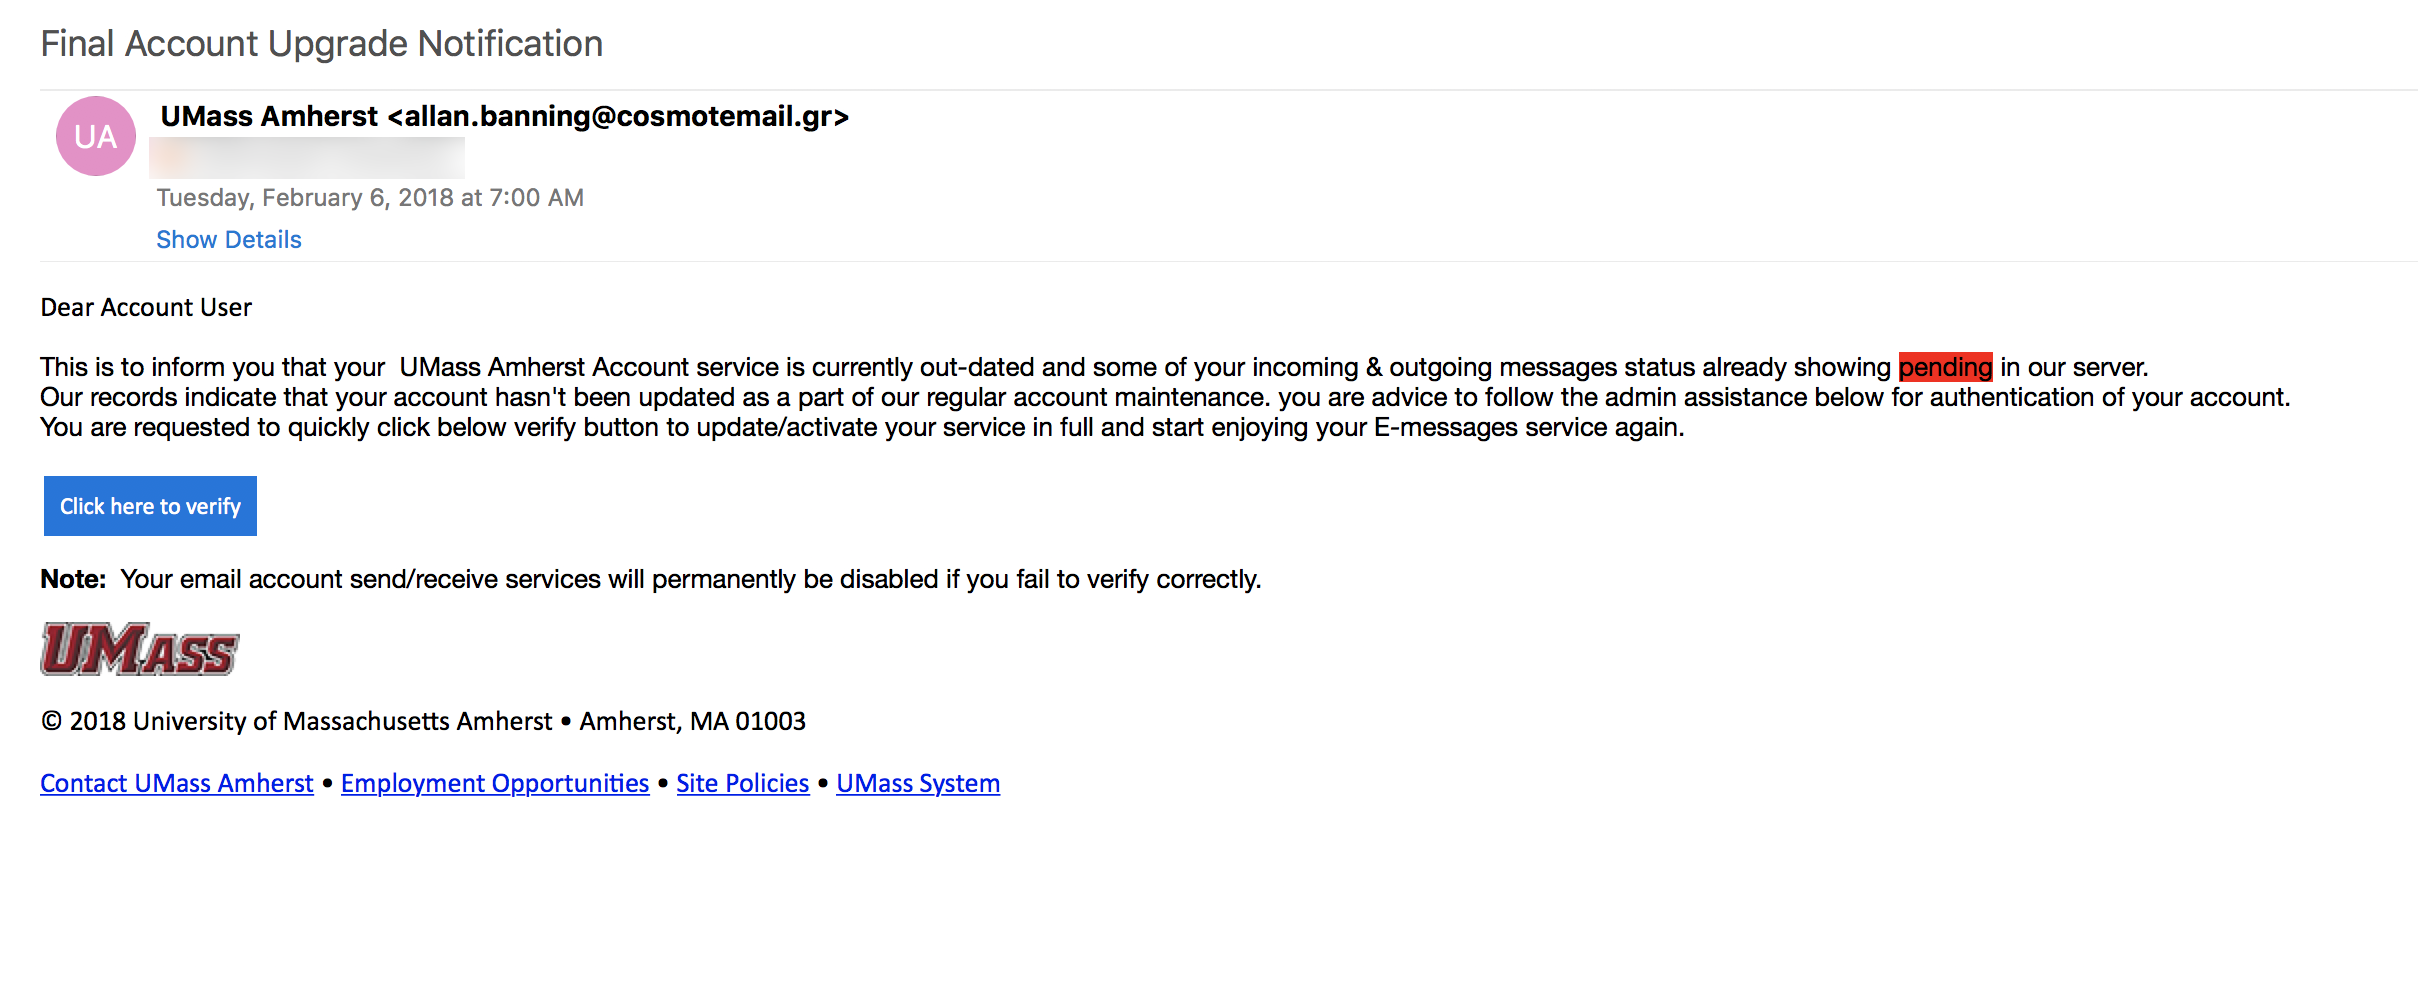 Phishing email sent by 'allan banning'